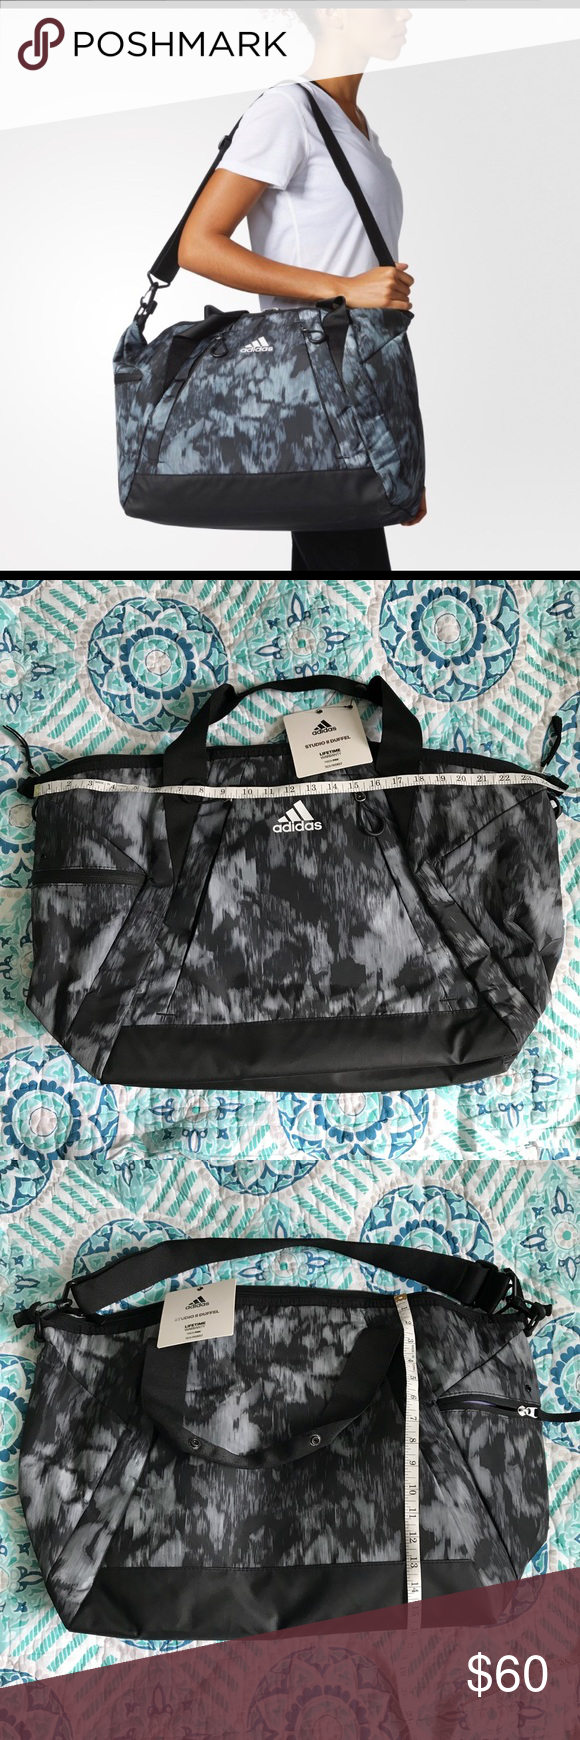 ba082606c67729 Adidas Women's Training Studio ii Duffel Bag Condition: New with tag Size:  One Size Color: Grey/Black/White adidas Bags Travel Bags